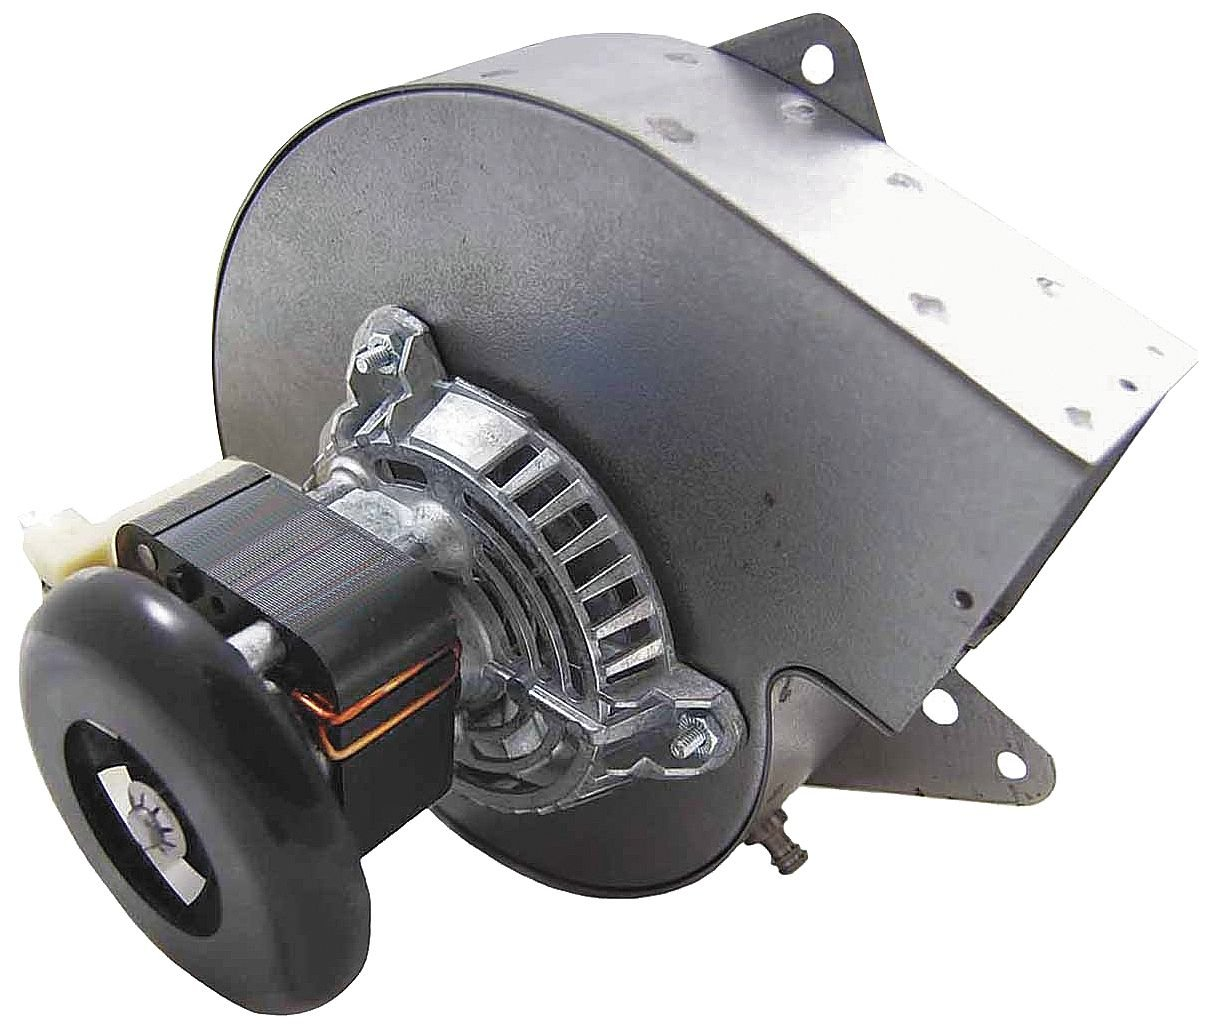 Packard 66005 packard draft inducers 115 volts 3000 rpm packard 66005 packard draft inducers 115 volts 3000 rpm replacement household furnace motors amazon publicscrutiny Choice Image